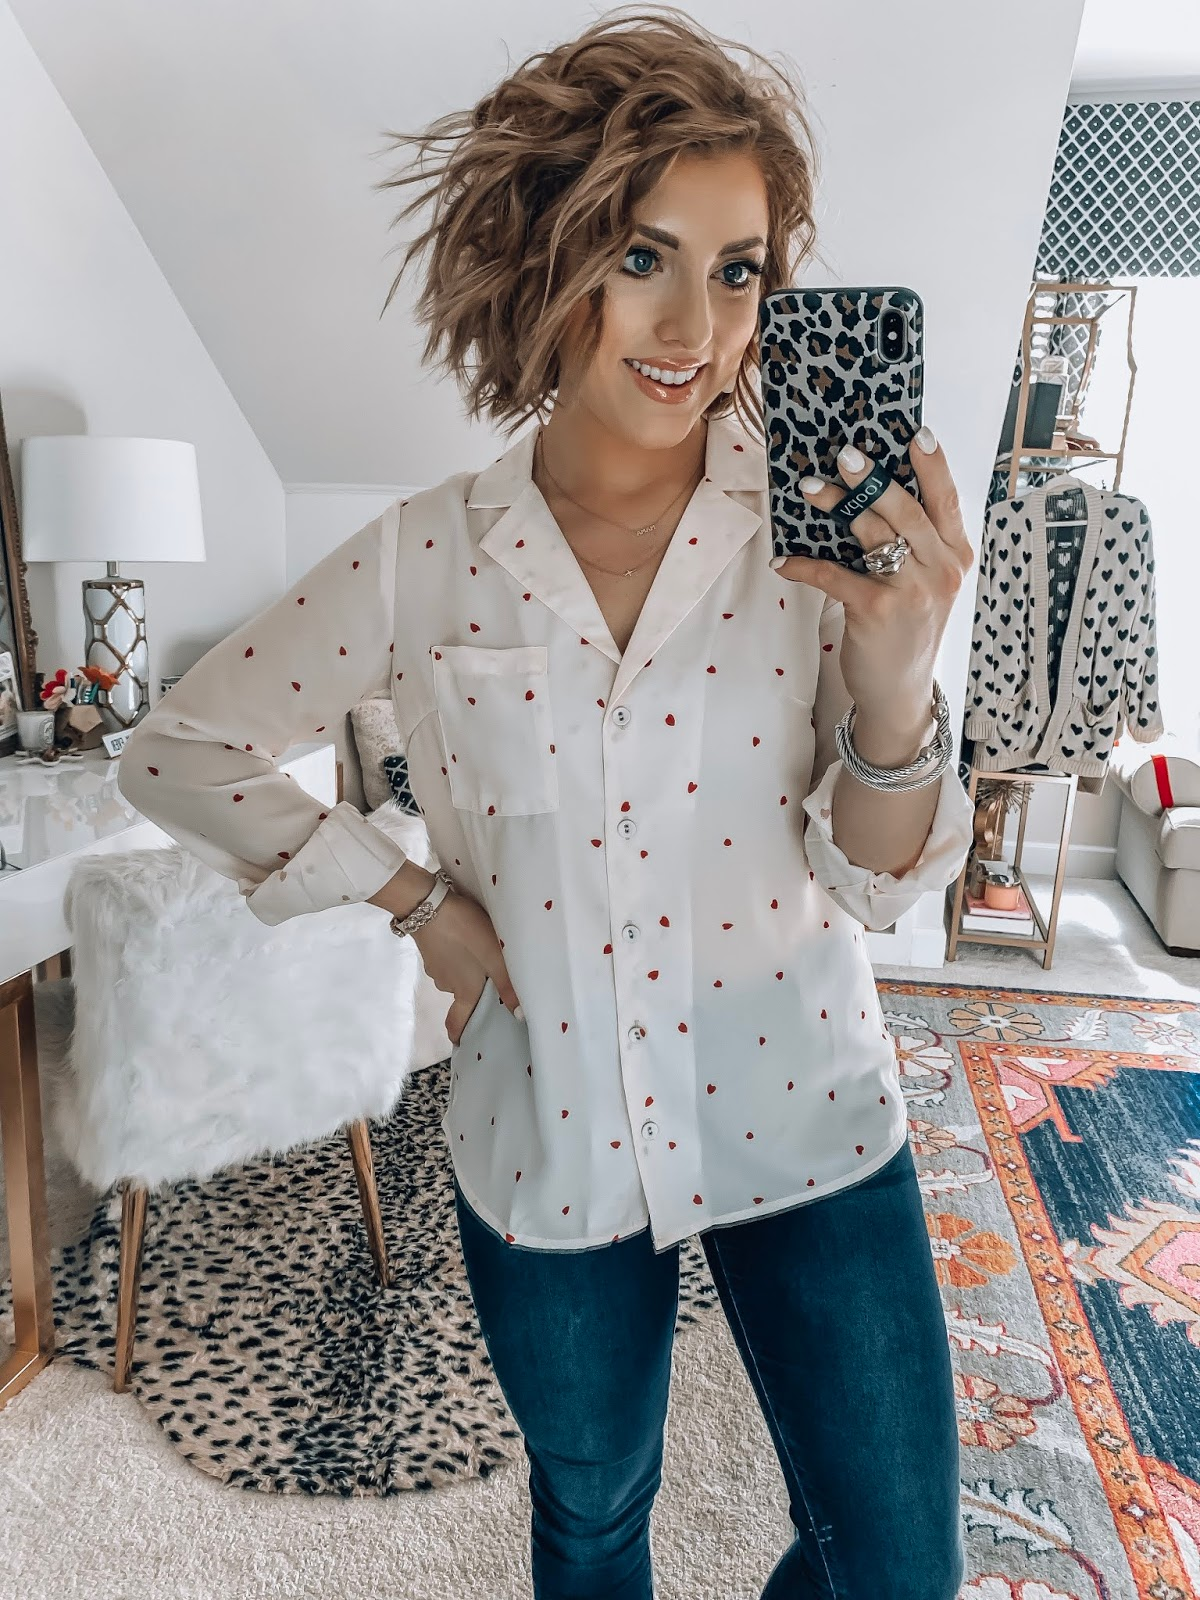 Recent Amazon Finds - Under $30 Heart Print Blouse for Valentine's Day - Something Delightful Blog #AmazonFashion #RecentFinds #Hearts #ValentinesDay #AffordableFashion